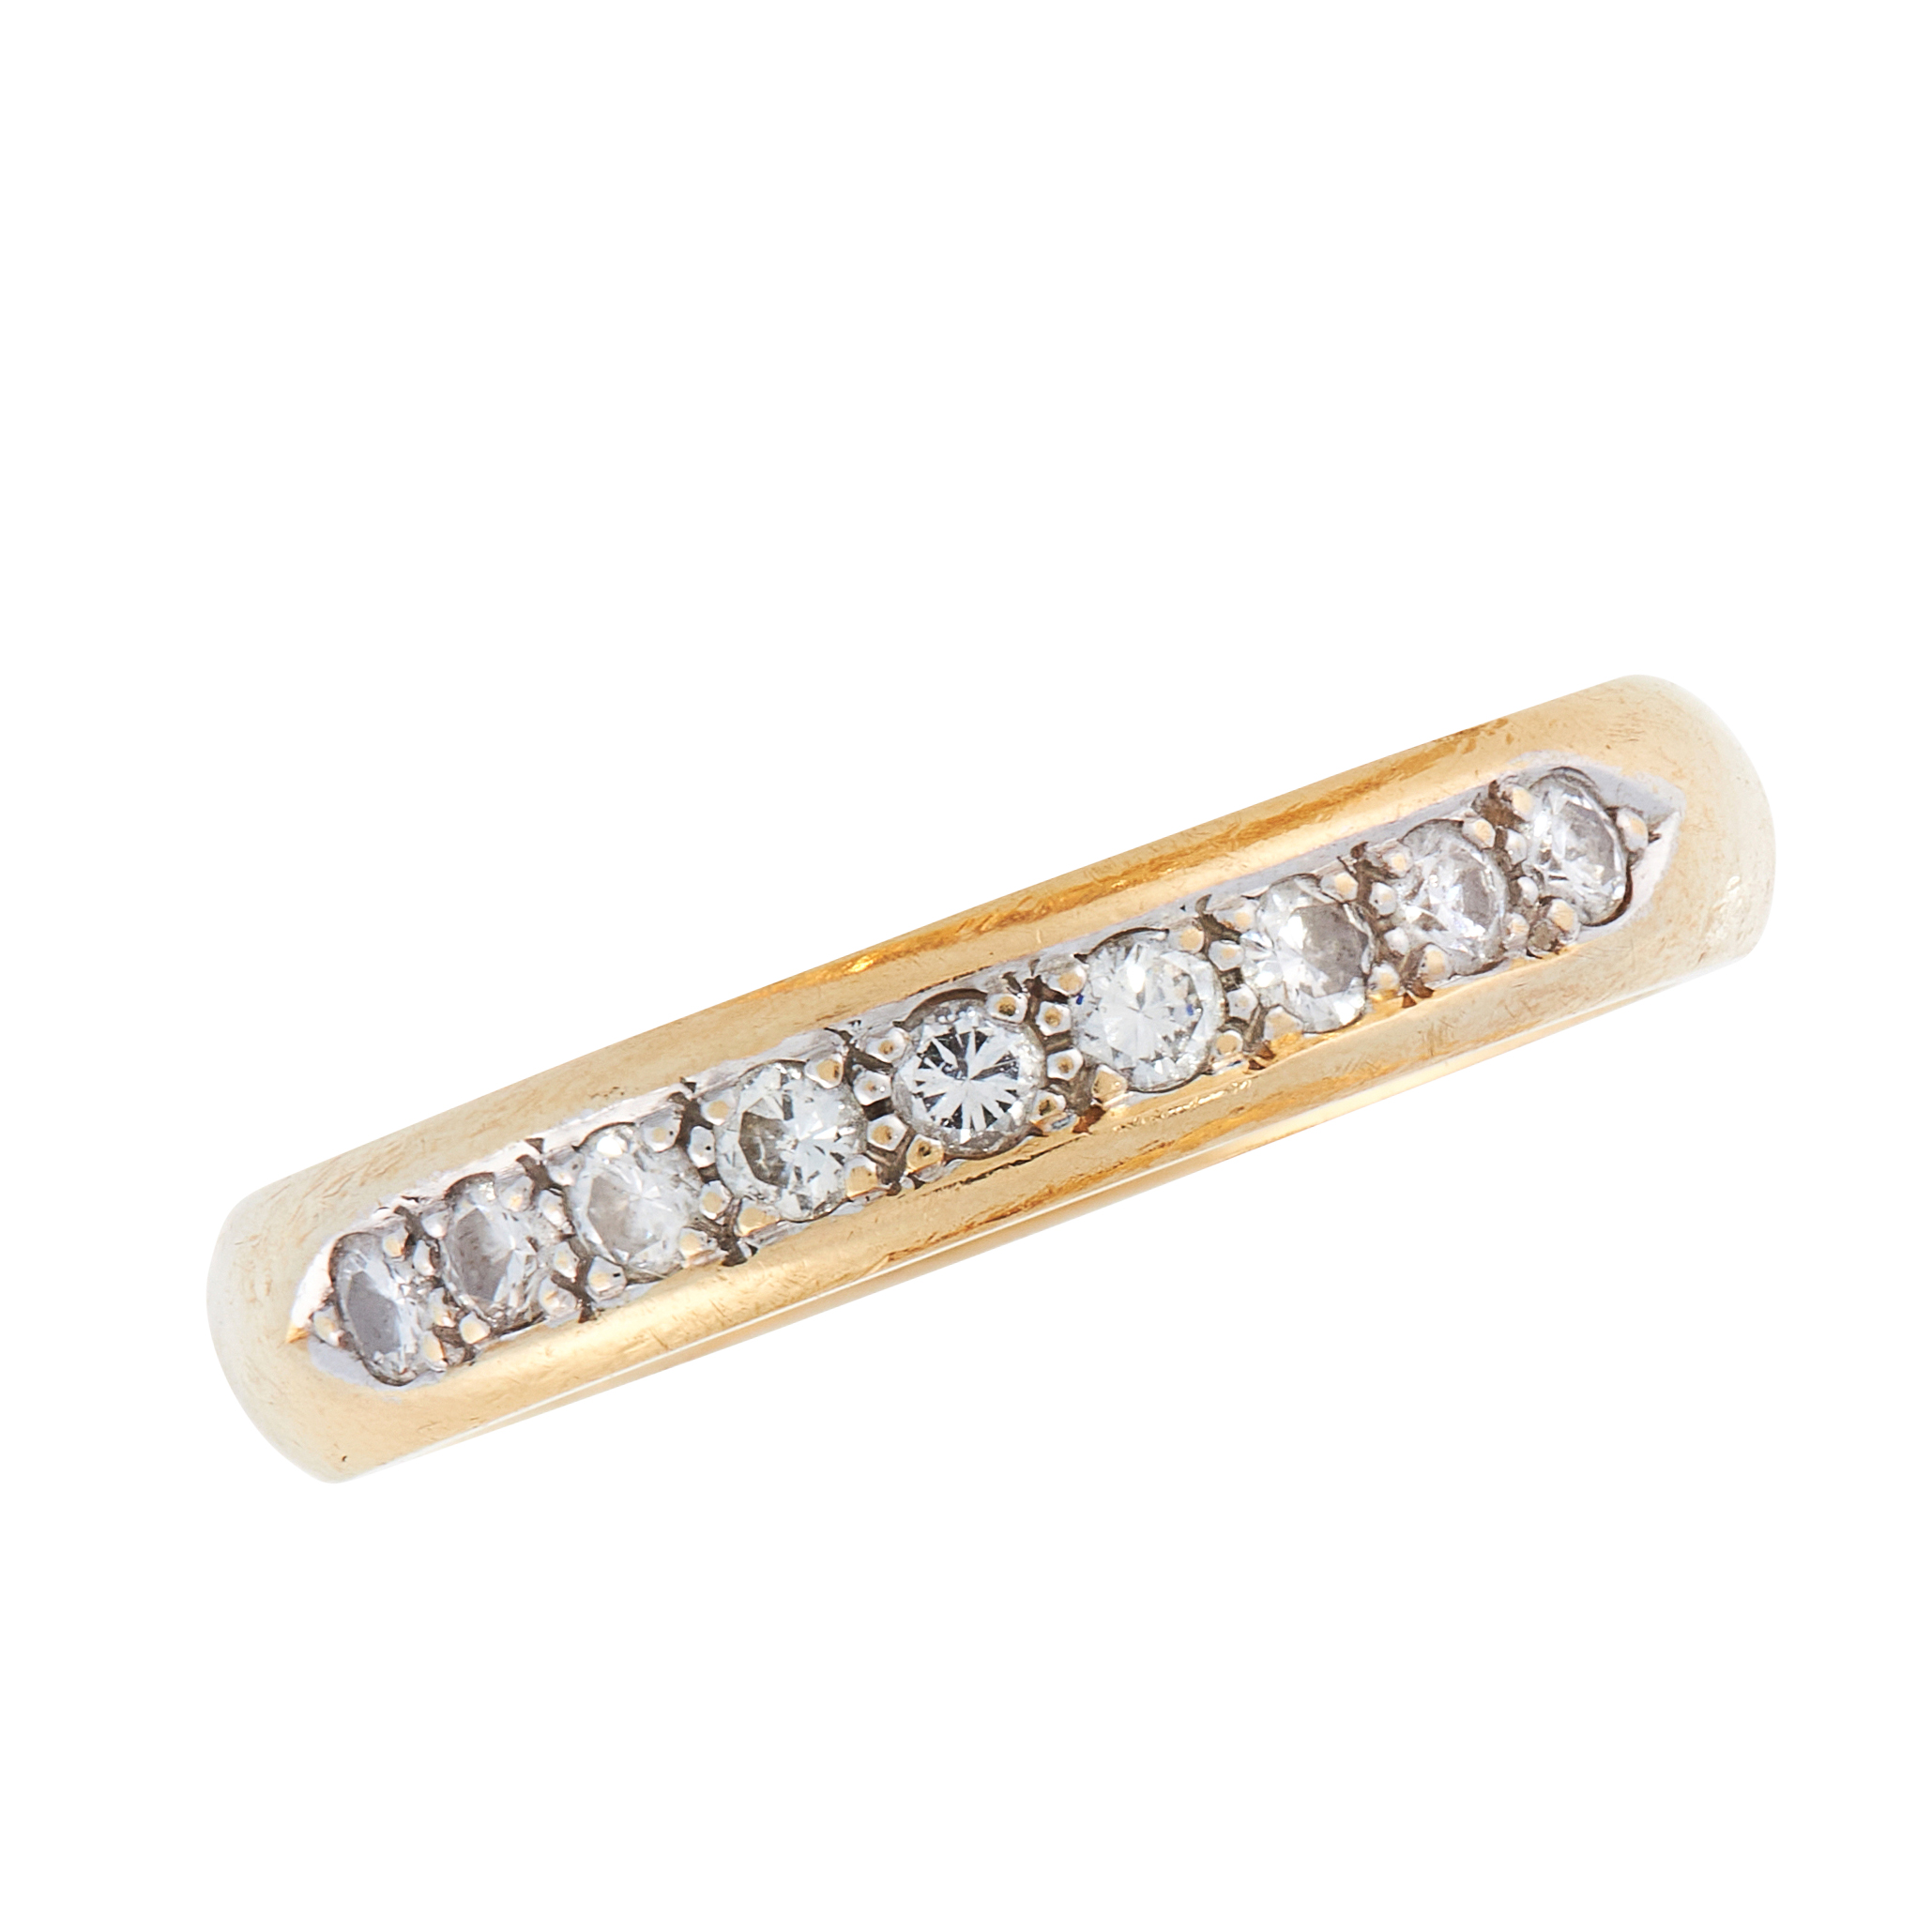 A VINTAGE DIAMOND HALF ETERNITY RING in 18ct yellow gold, the band set with nine round cut diamonds,